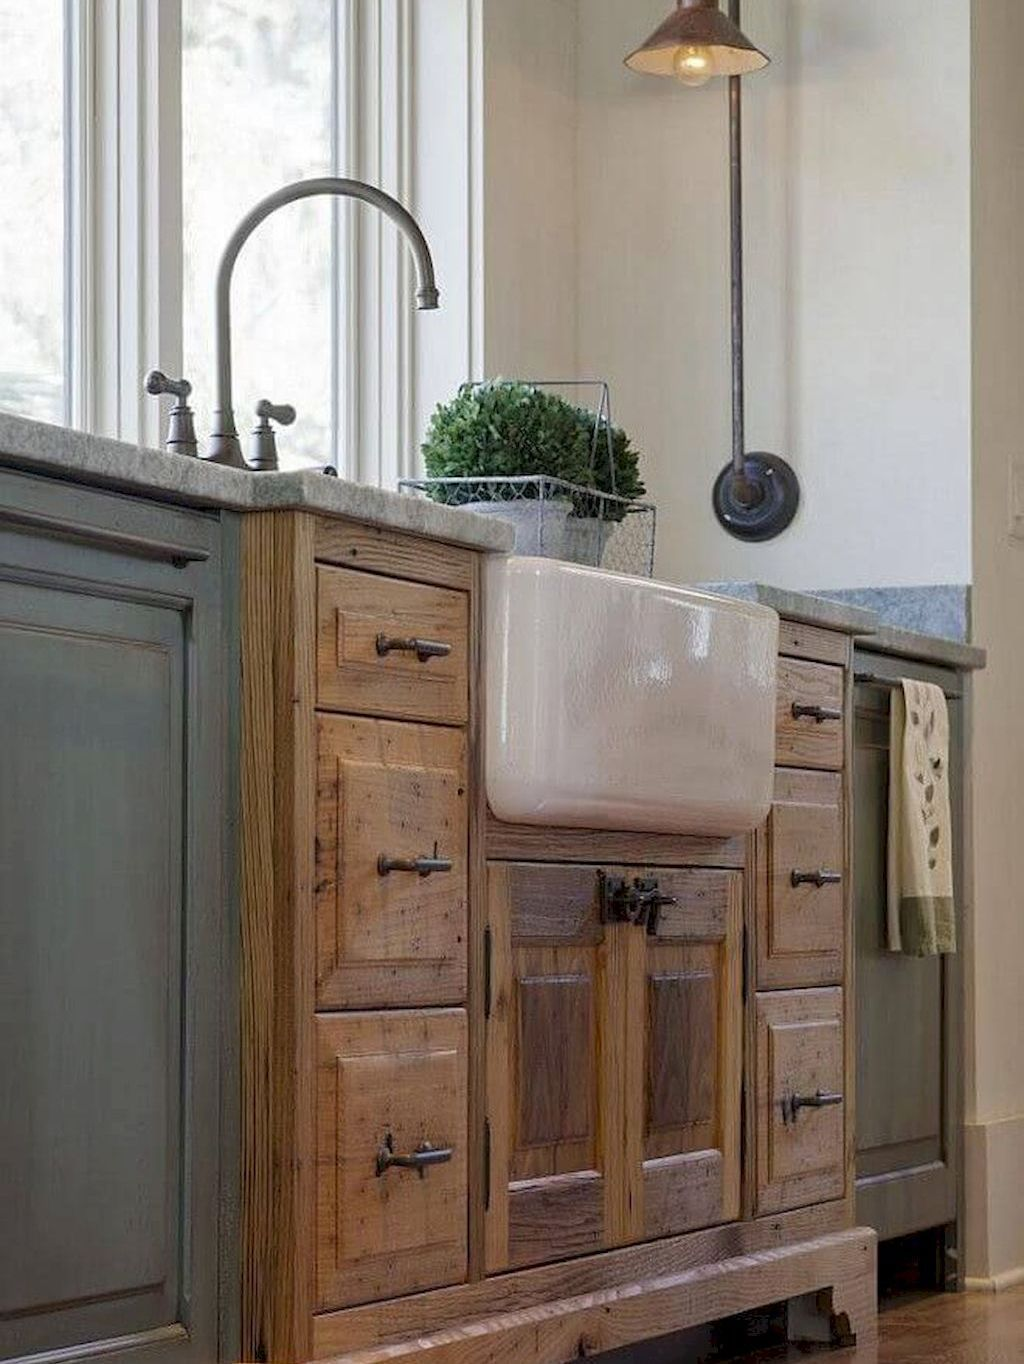 BEAUTIFUL 100+ RUSTIC KITCHEN CABINET IDEAS is part of cabinet Makeover Rustic - You're standing in your cozy rustic kitchen admiring the nice and cozy glow that solely aged wooden cupboards and a pure fire can emit, and the scent of pine timber surrounds your senses  You drop into your favourite plaidcovered chair, resting your stocking ft near the open flame of the woodburning range — simply shut     Read moreBEAUTIFUL 100+ RUSTIC KITCHEN CABINET IDEAS